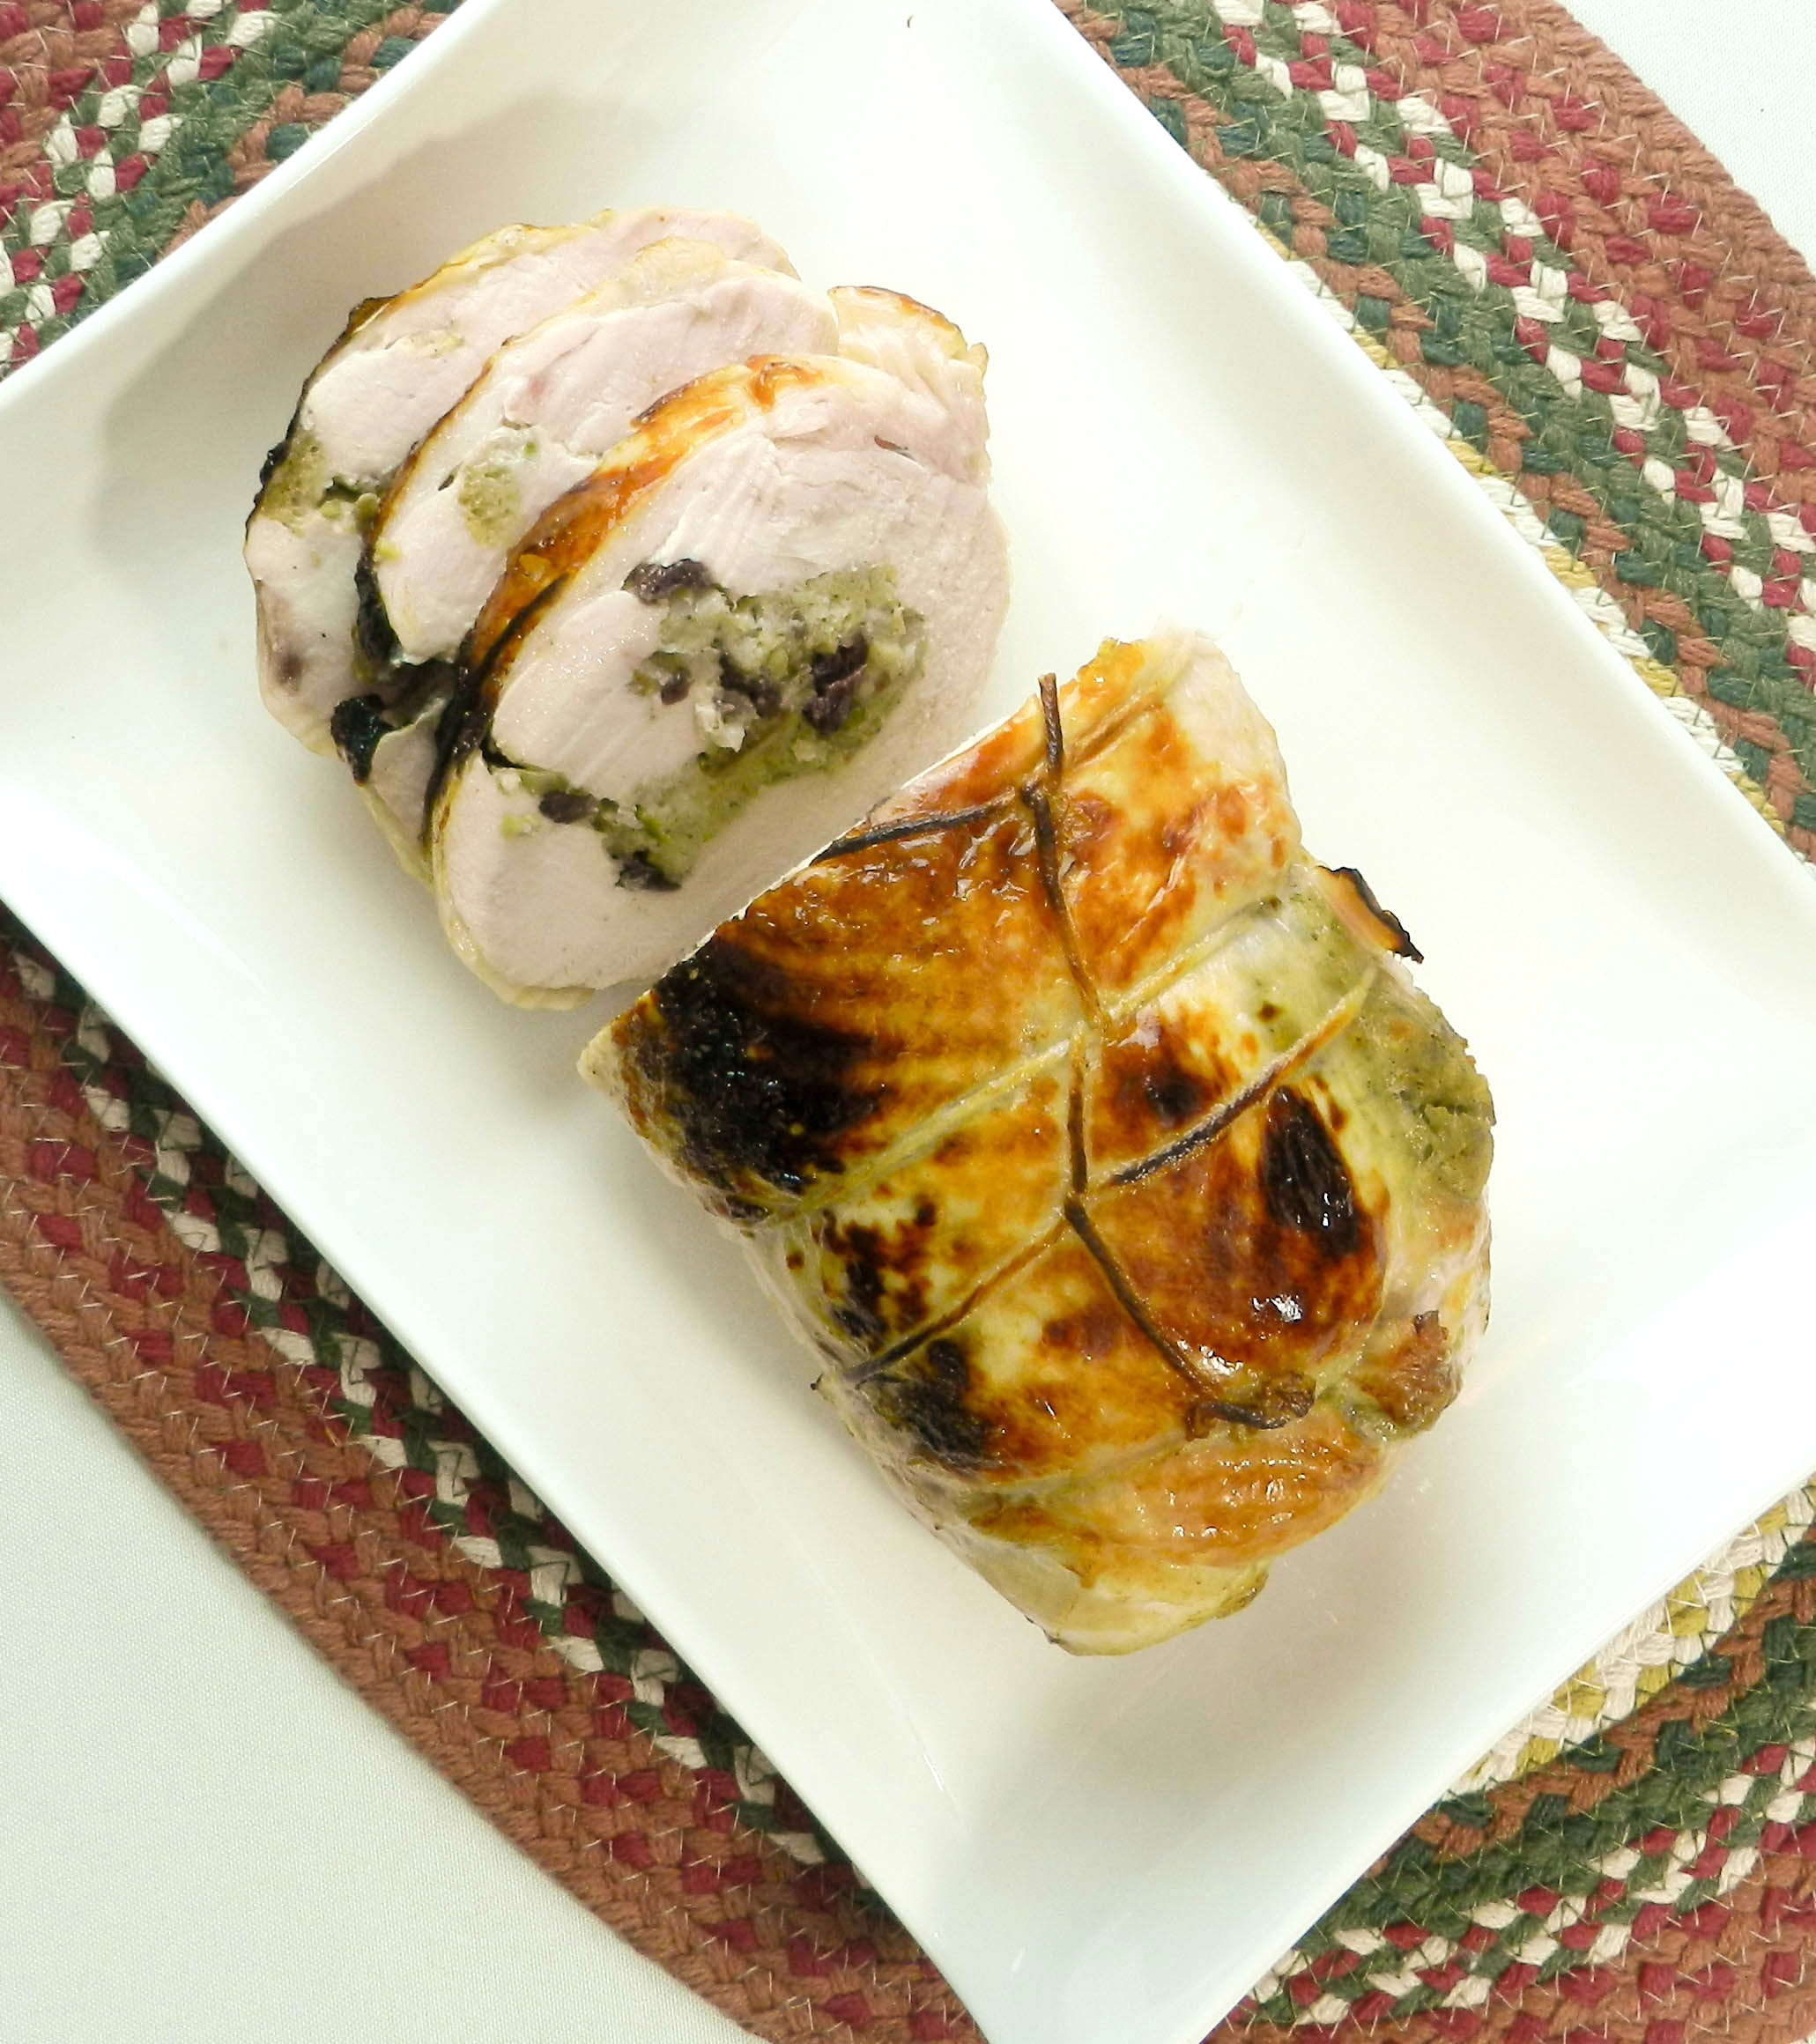 Turkey breast roulade spending superfluous